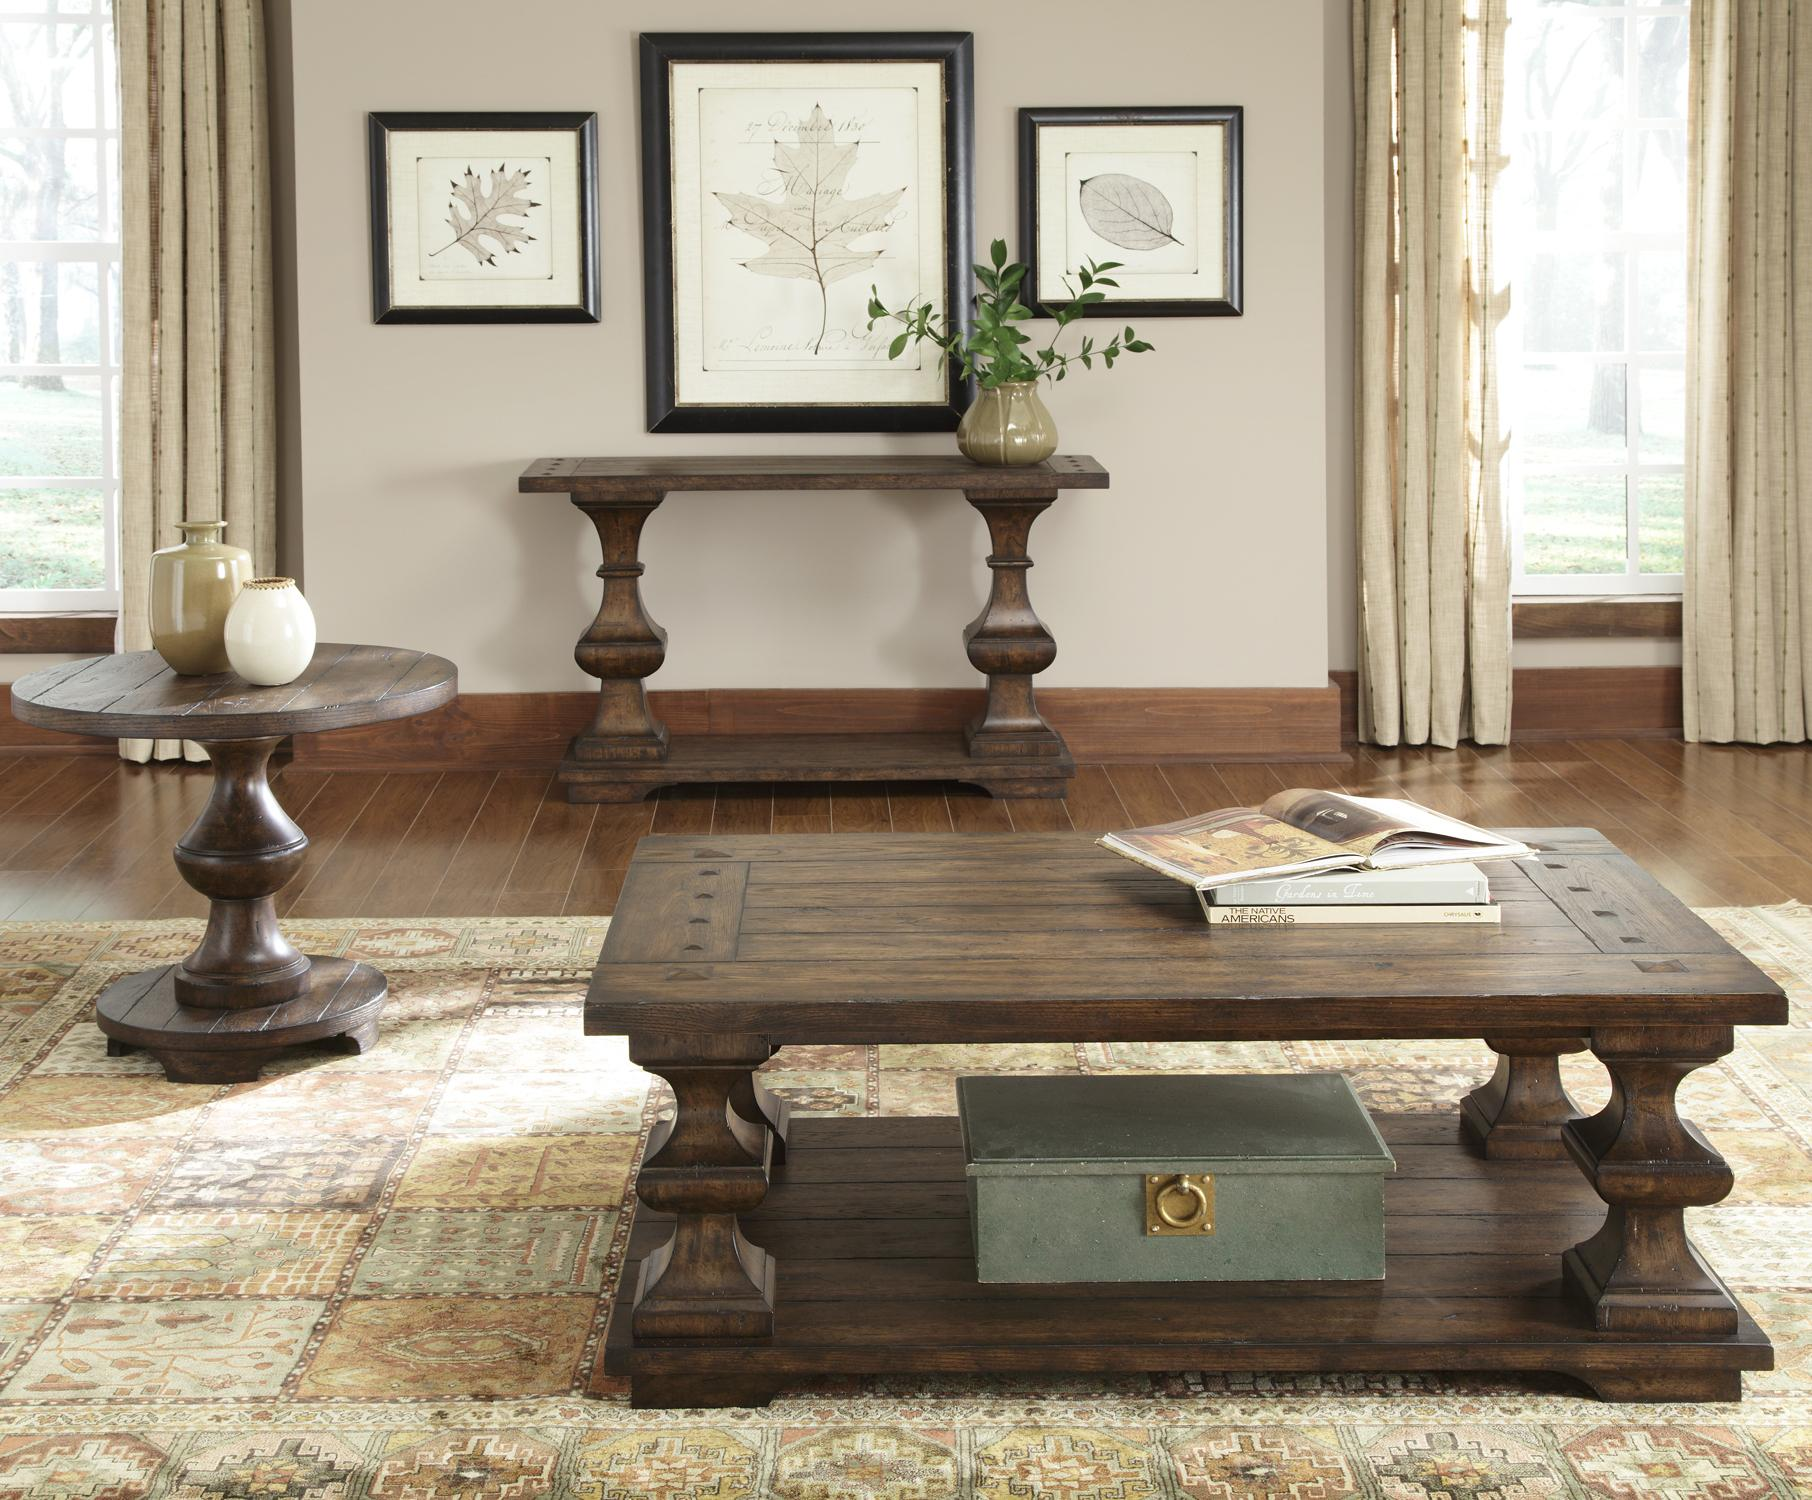 Liberty furniture sedona rectangular sofa table with bottom shelf liberty furniture sedona rectangular sofa table with bottom shelf and turned legs wayside furniture sofa table geotapseo Gallery